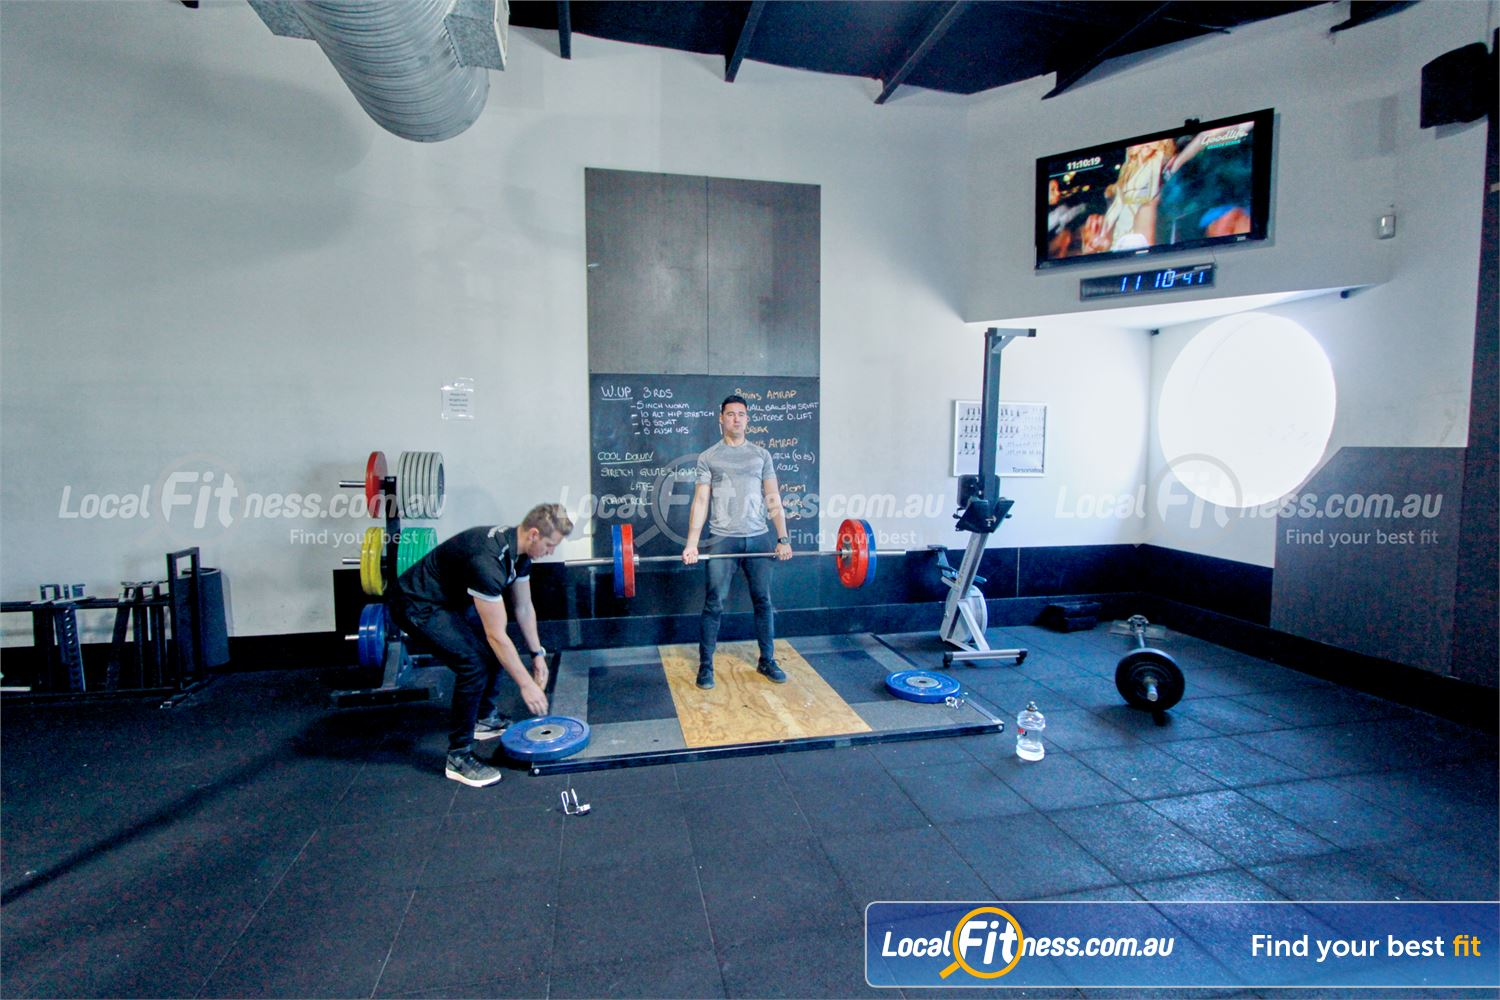 Goodlife Health Clubs Near Lilydale Heavy duty Olympic platforms and bumper plates.